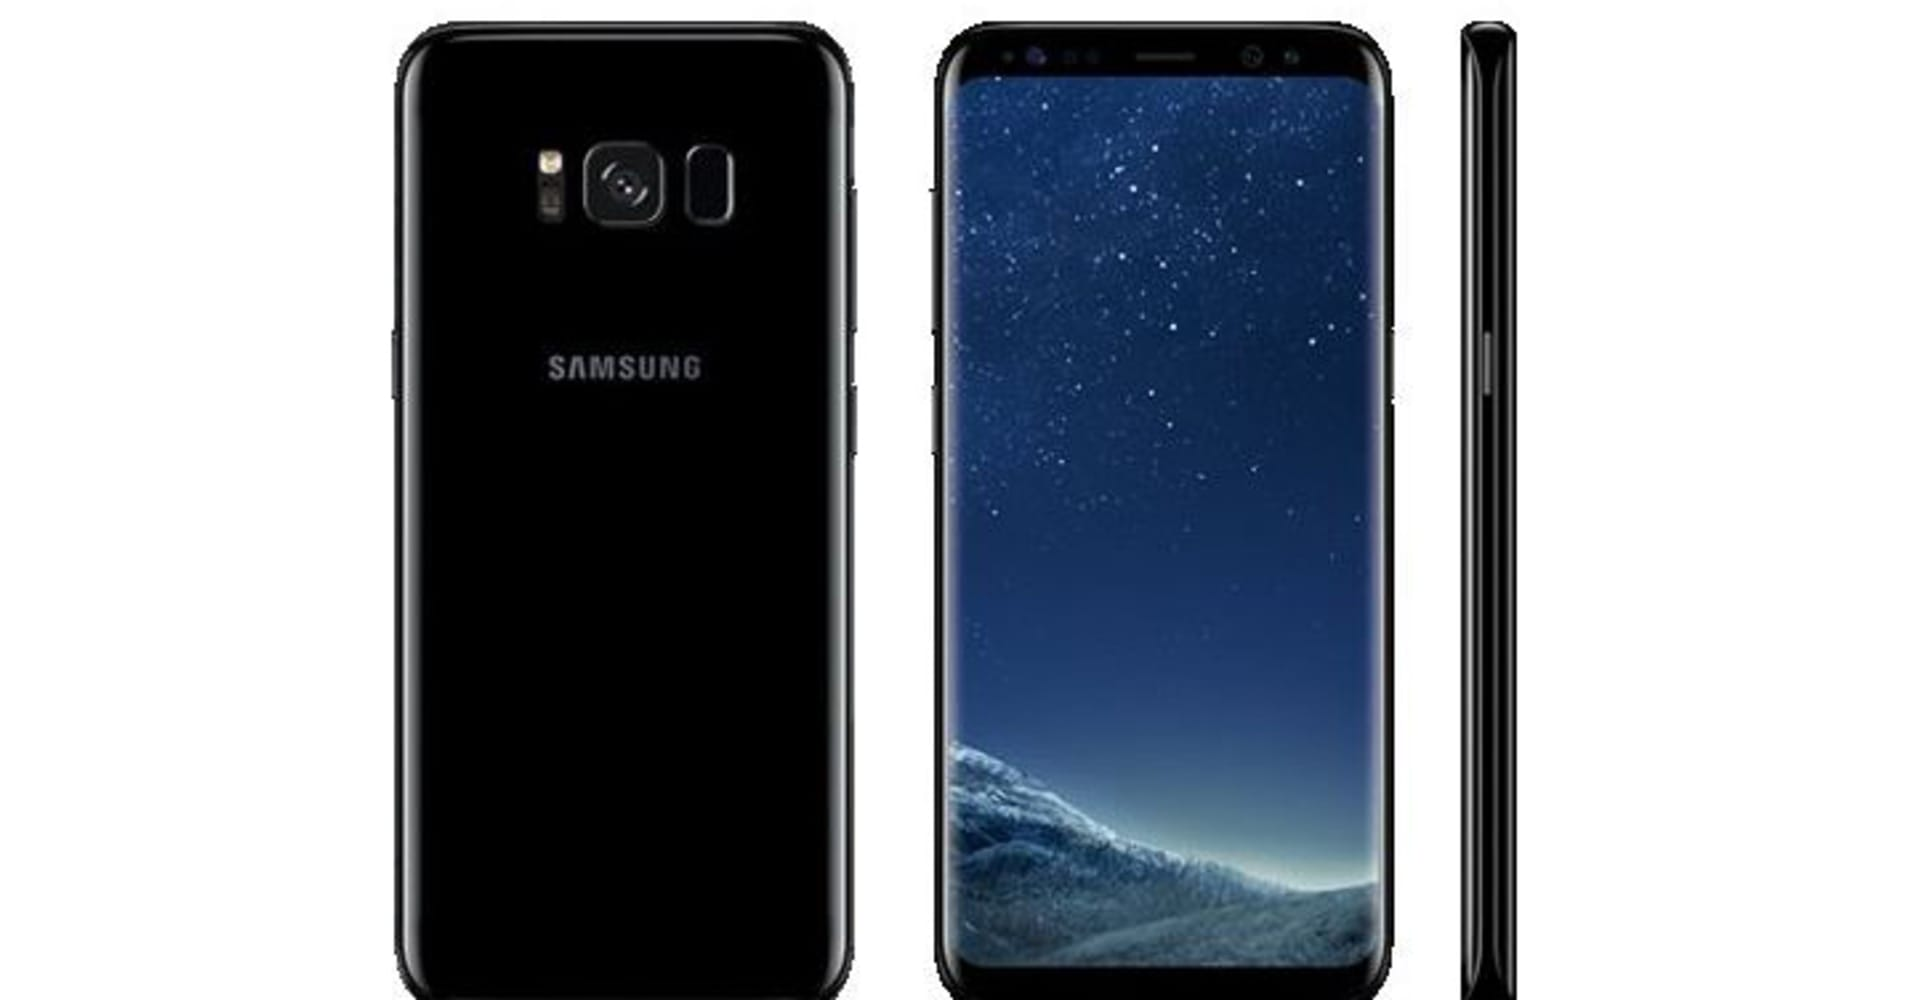 What to expect from Samsung's Galaxy S8 event on March 29